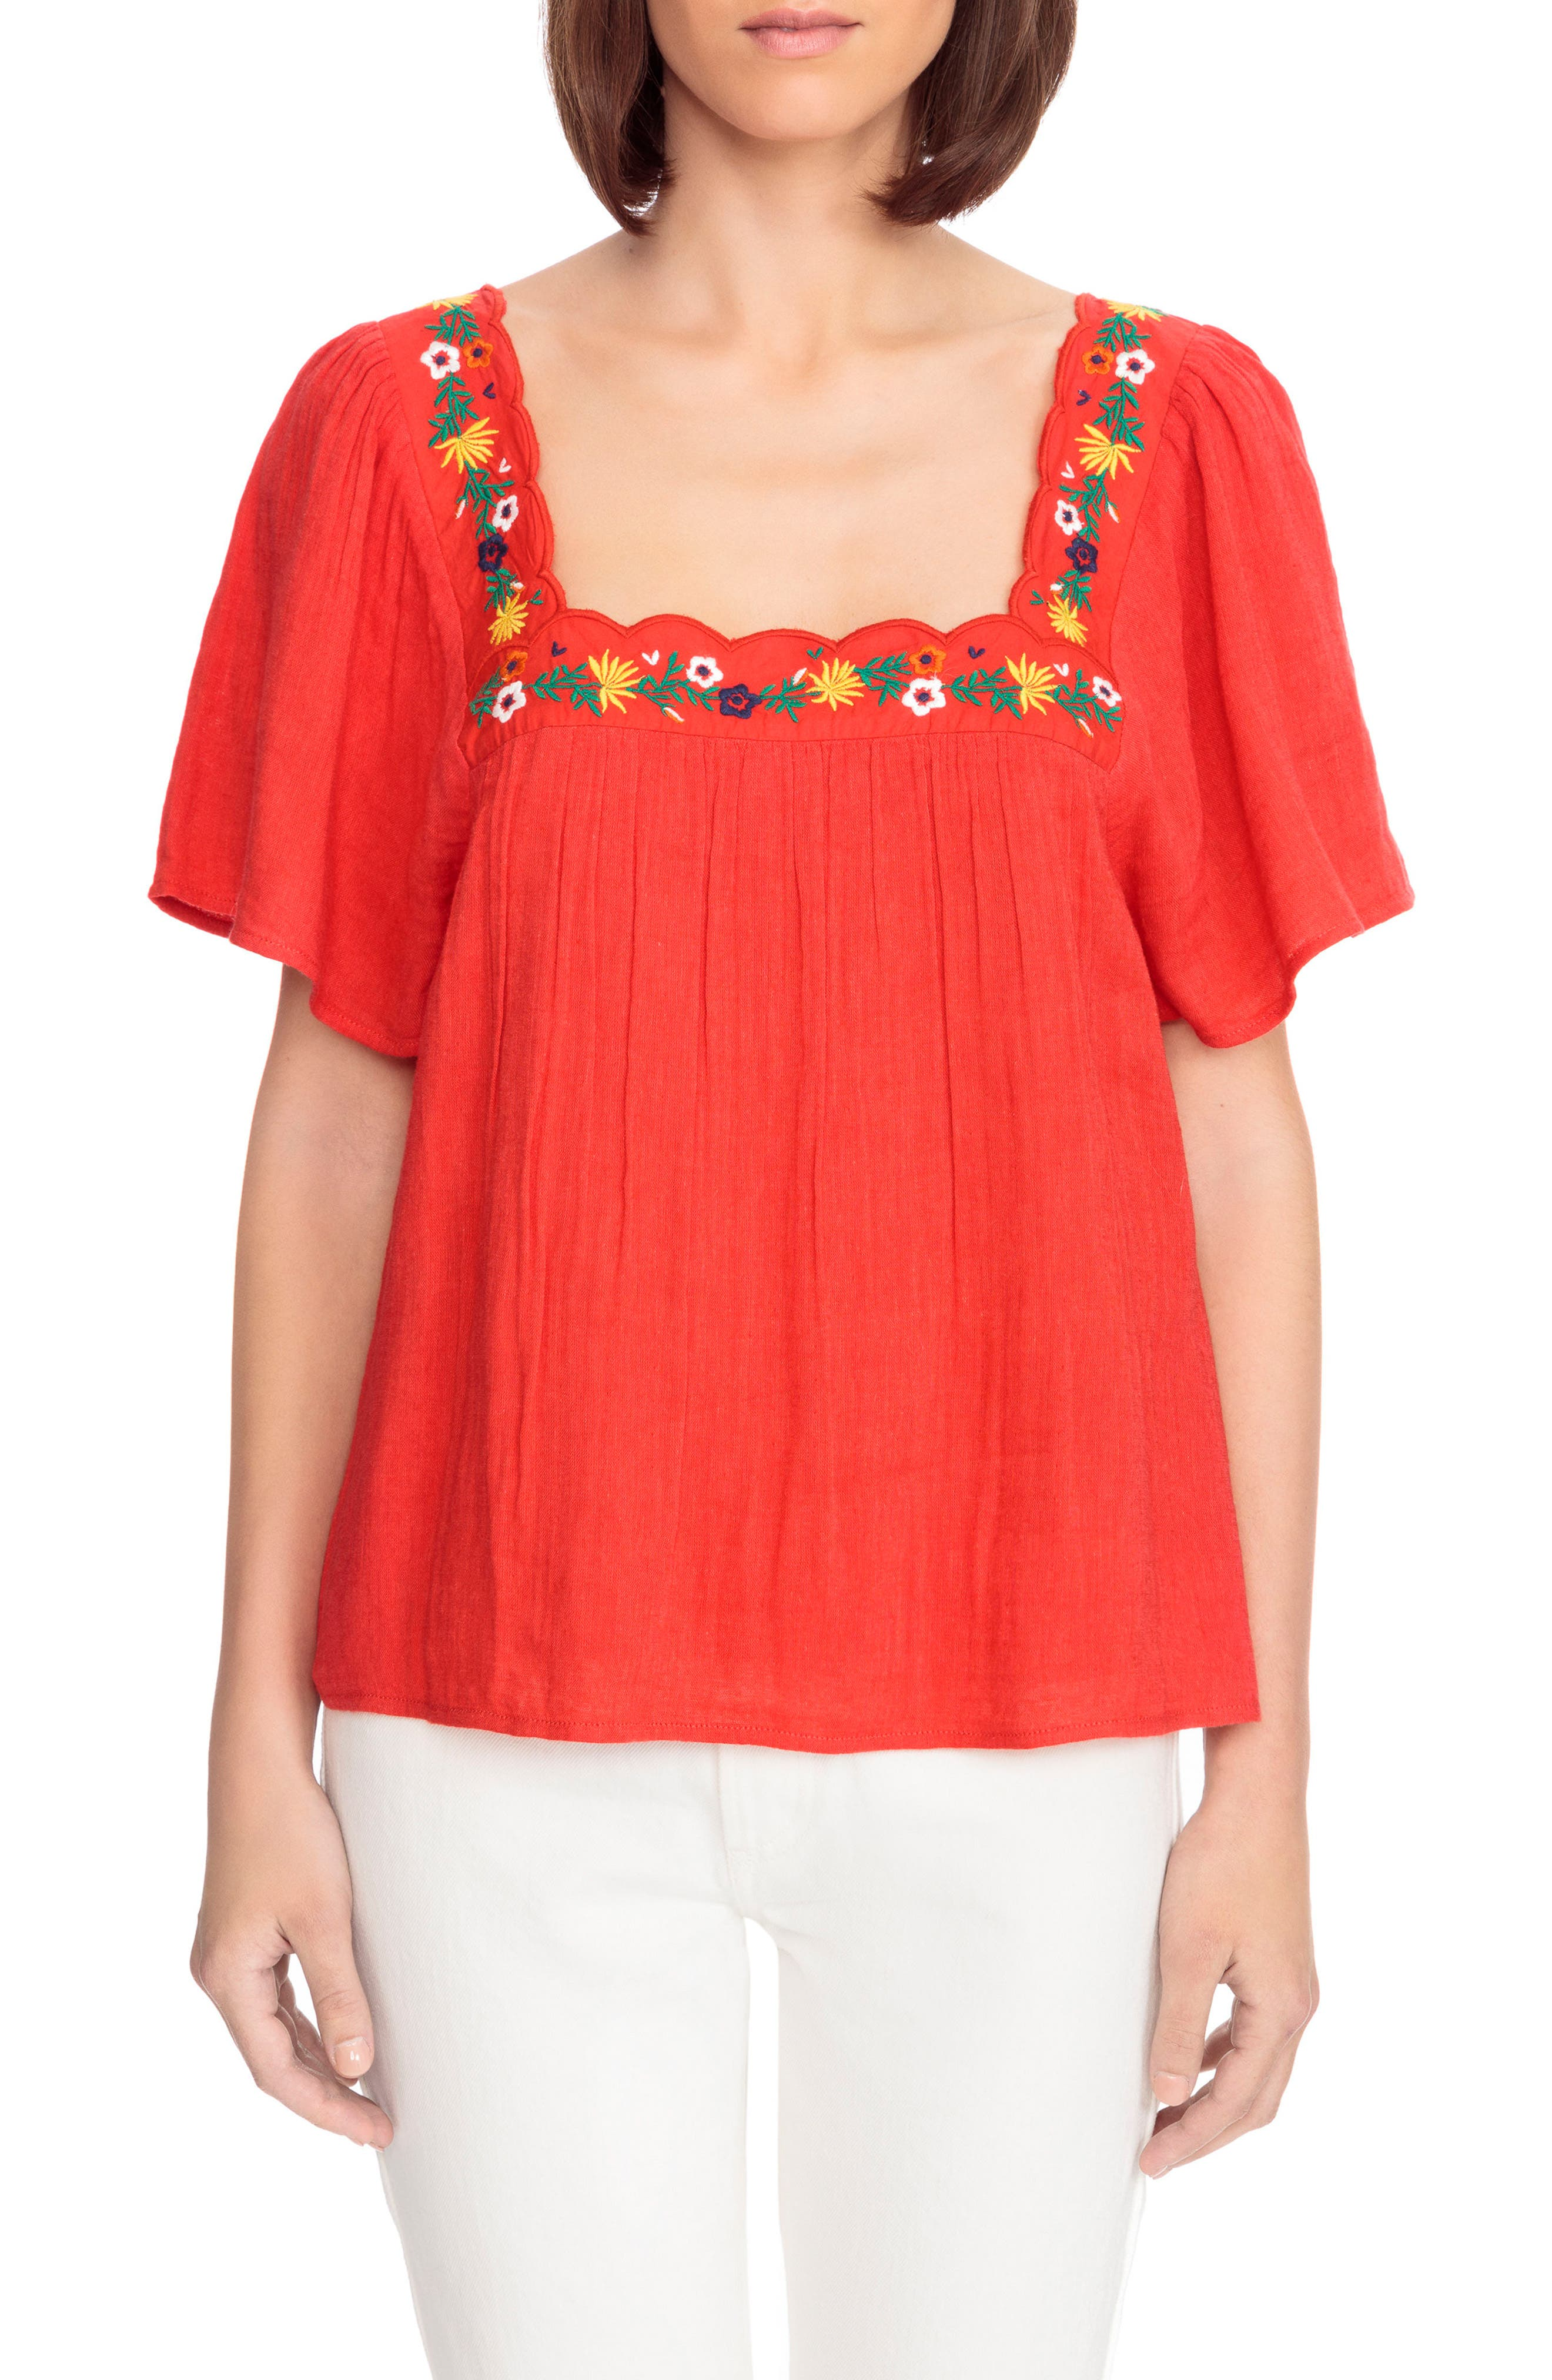 Bea Scalloped Top,                             Main thumbnail 1, color,                             Coral Red